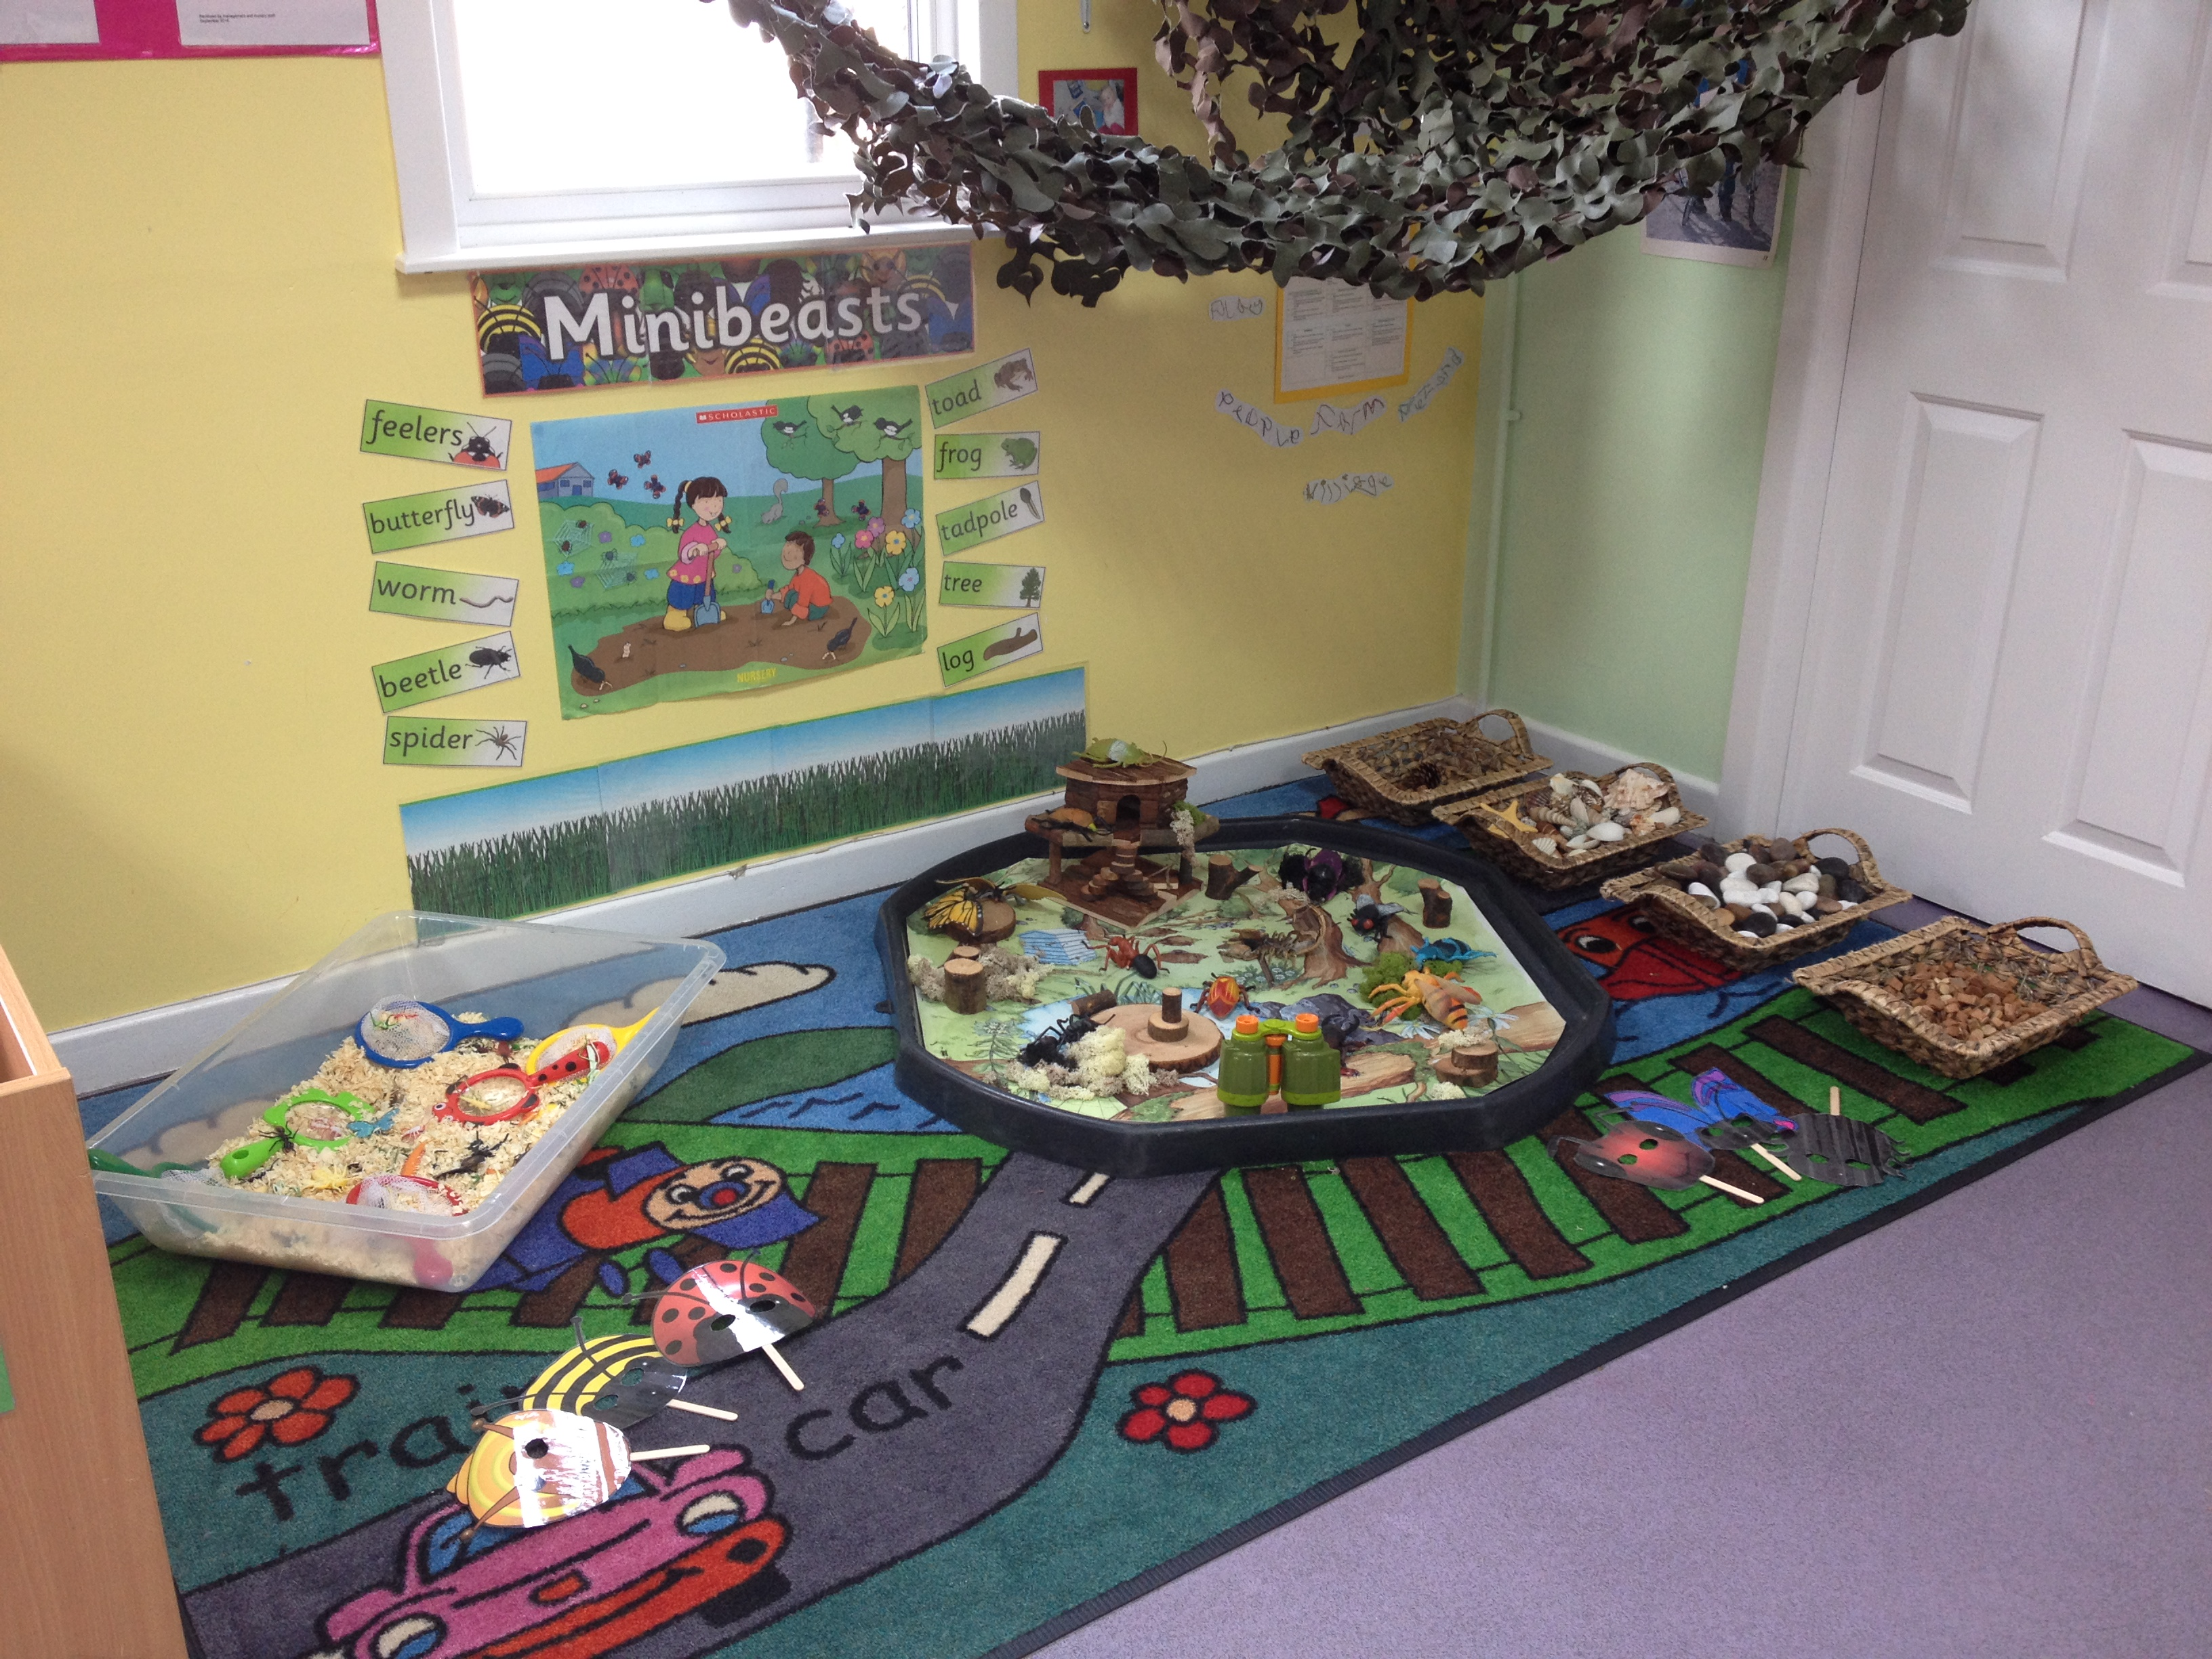 Small World play - Minibeasts